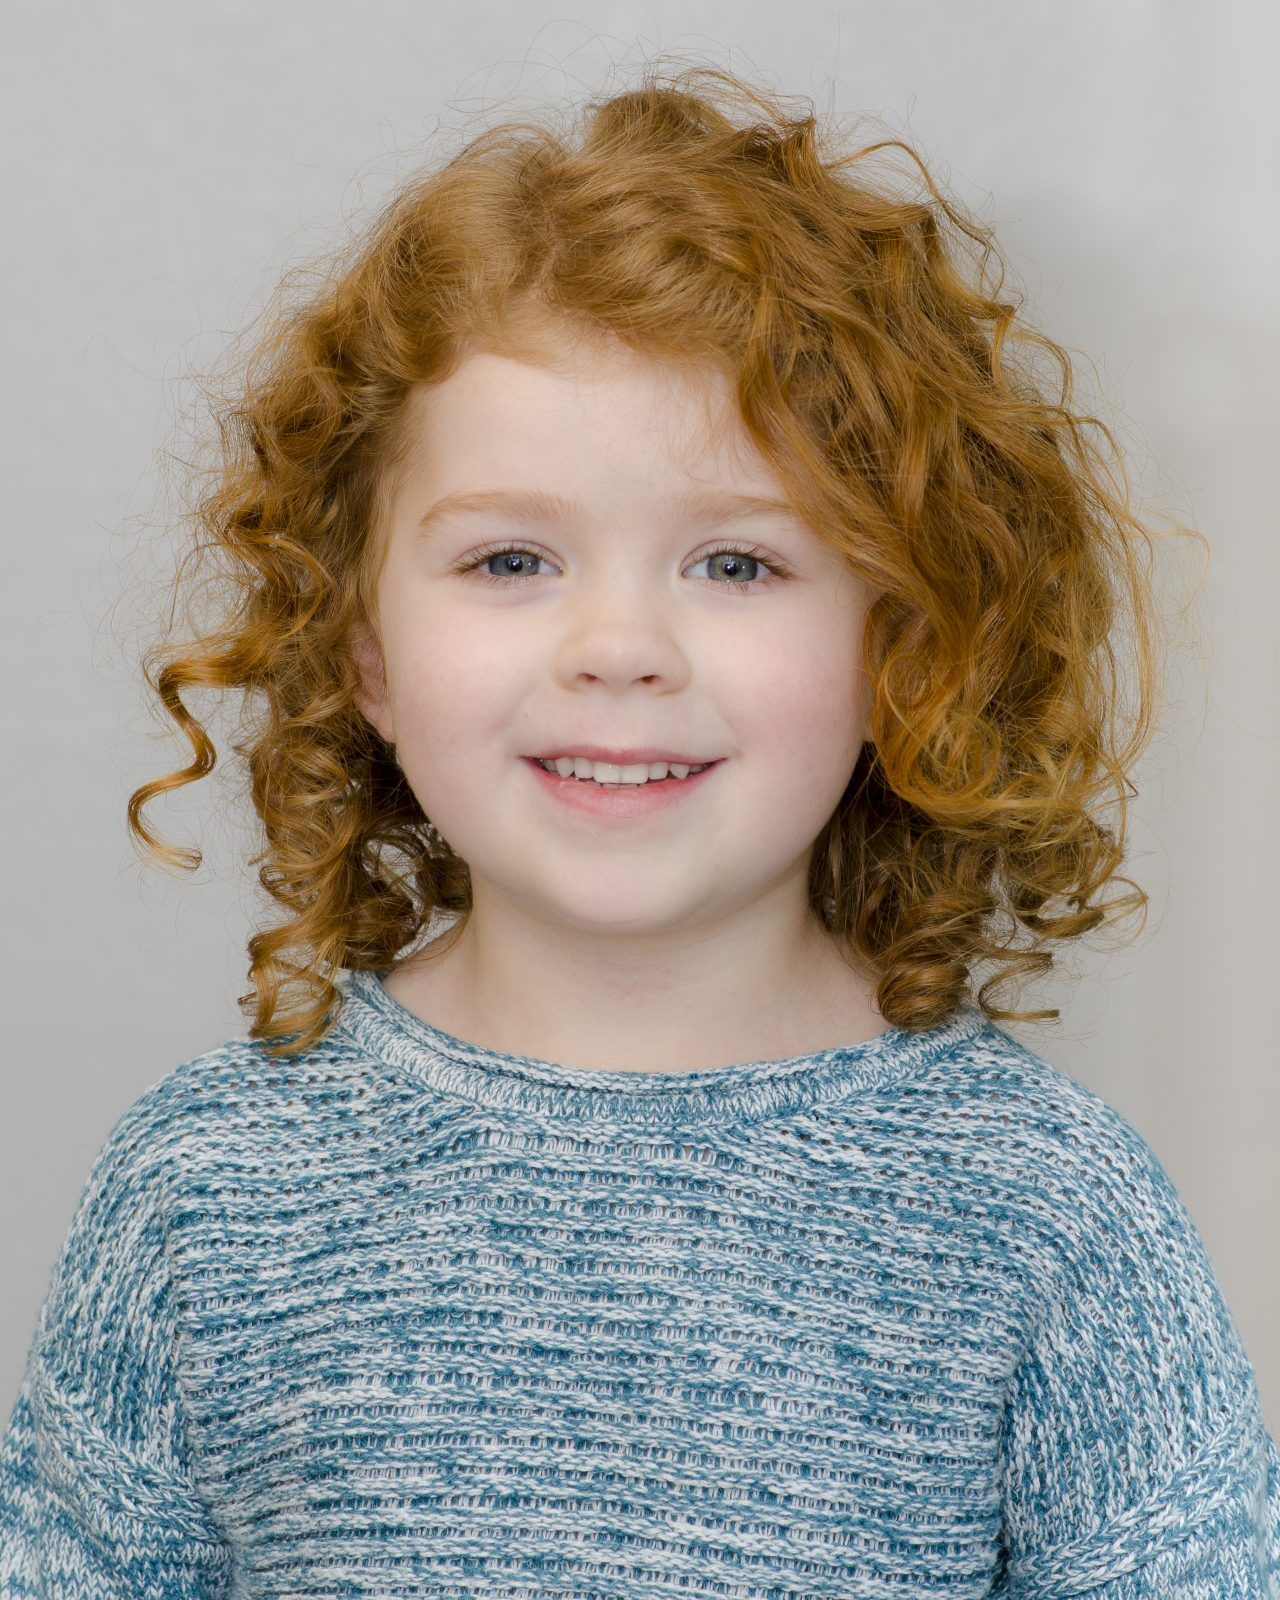 Everyday Hairstyles for Your Kid with Curly Hair {with Video Tutorial} | AllMomDoes in 2020 ...